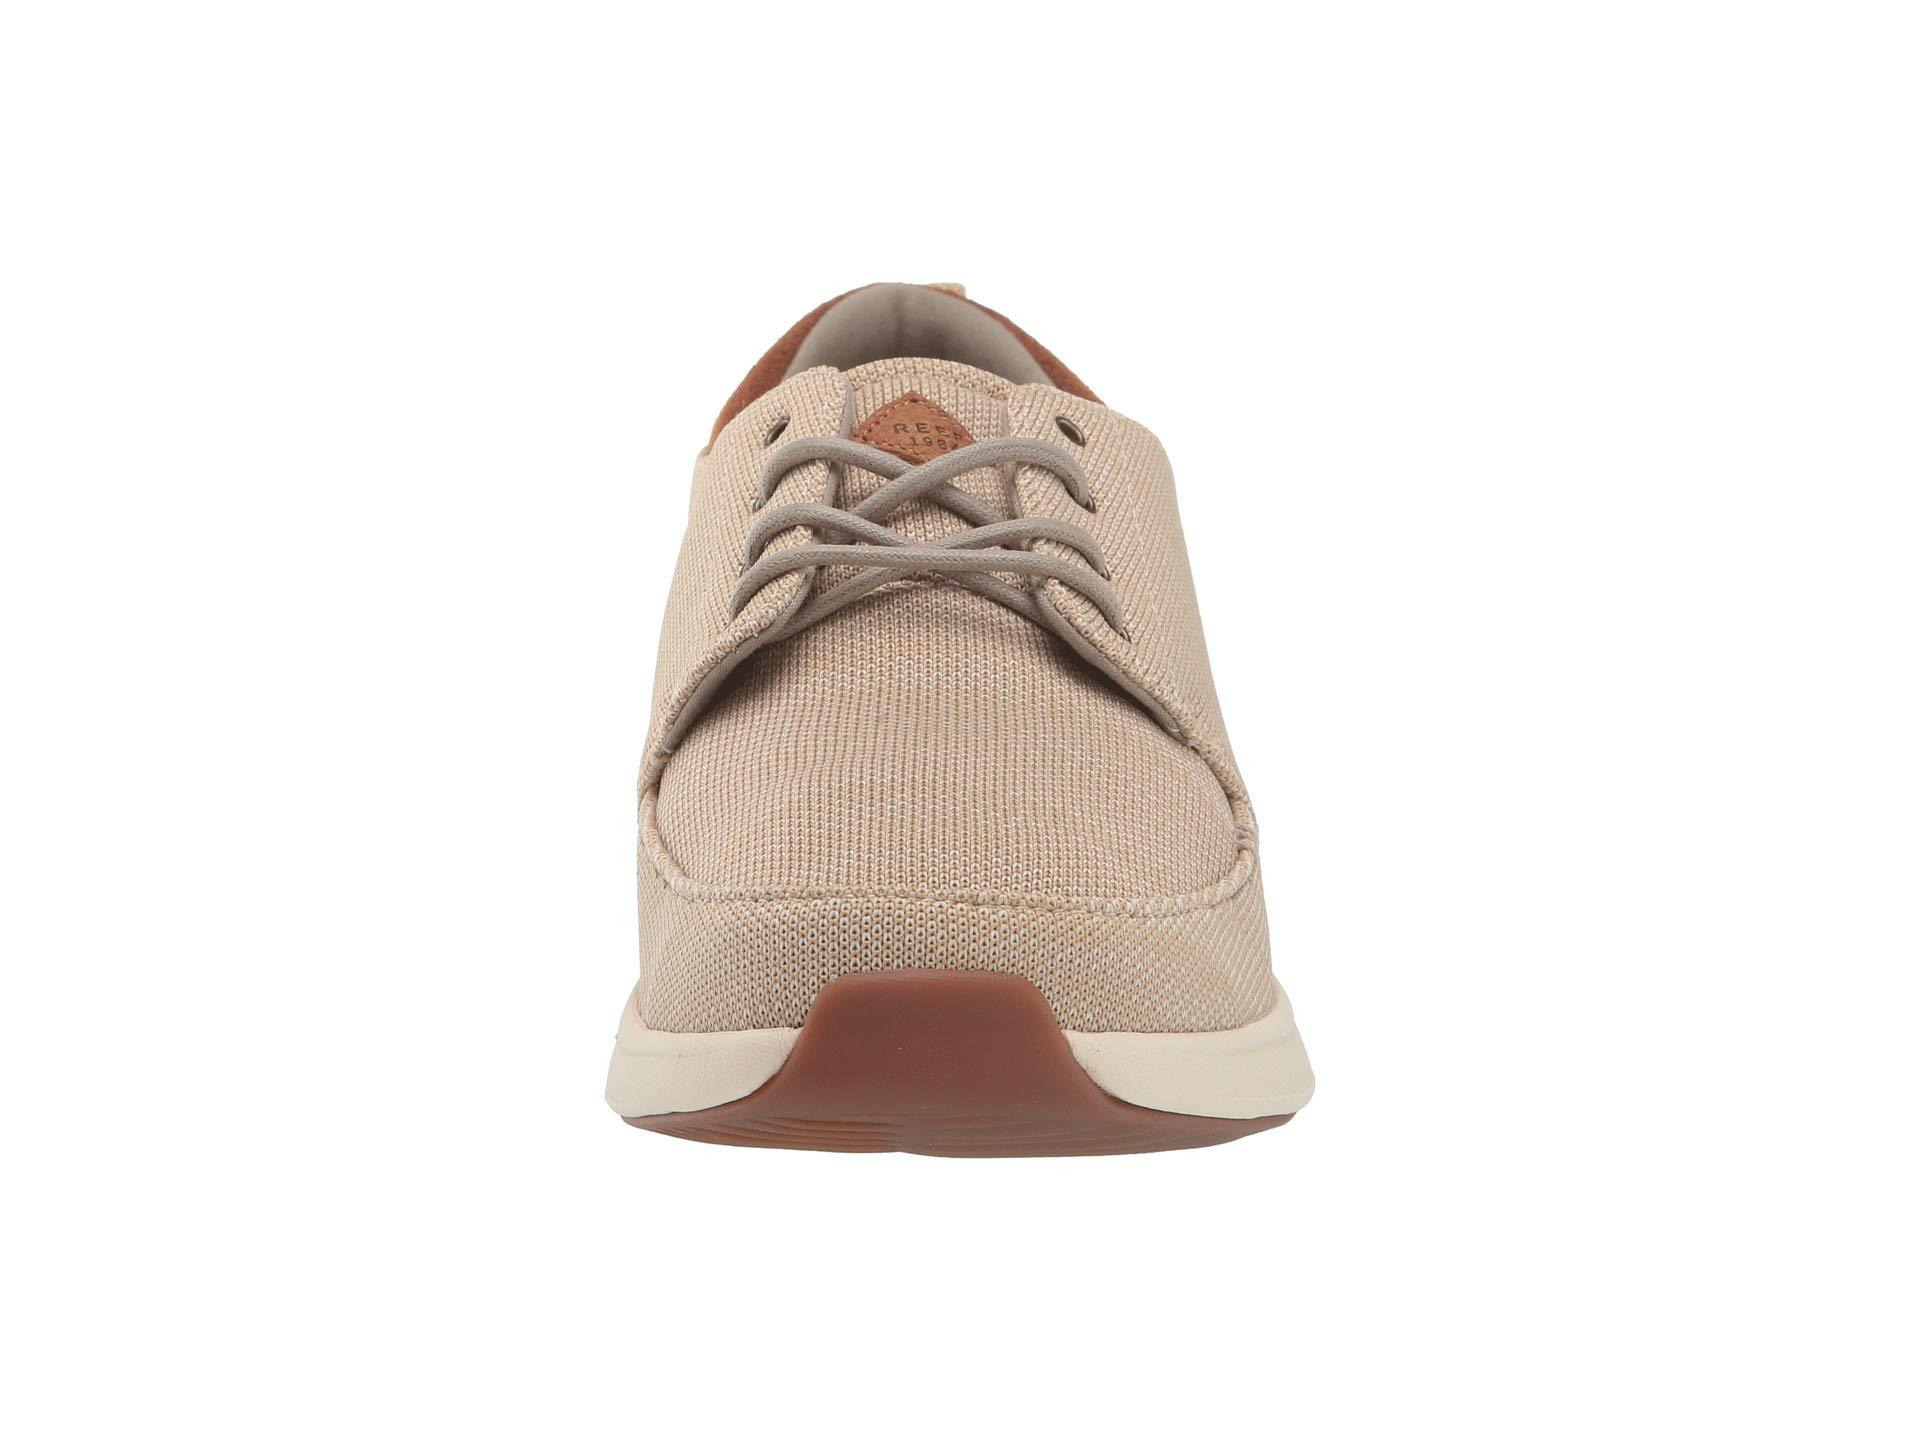 7144c2c089e8 Reef - Natural Rover Low Tx (grey heather) Men s Shoes for Men -. View  fullscreen